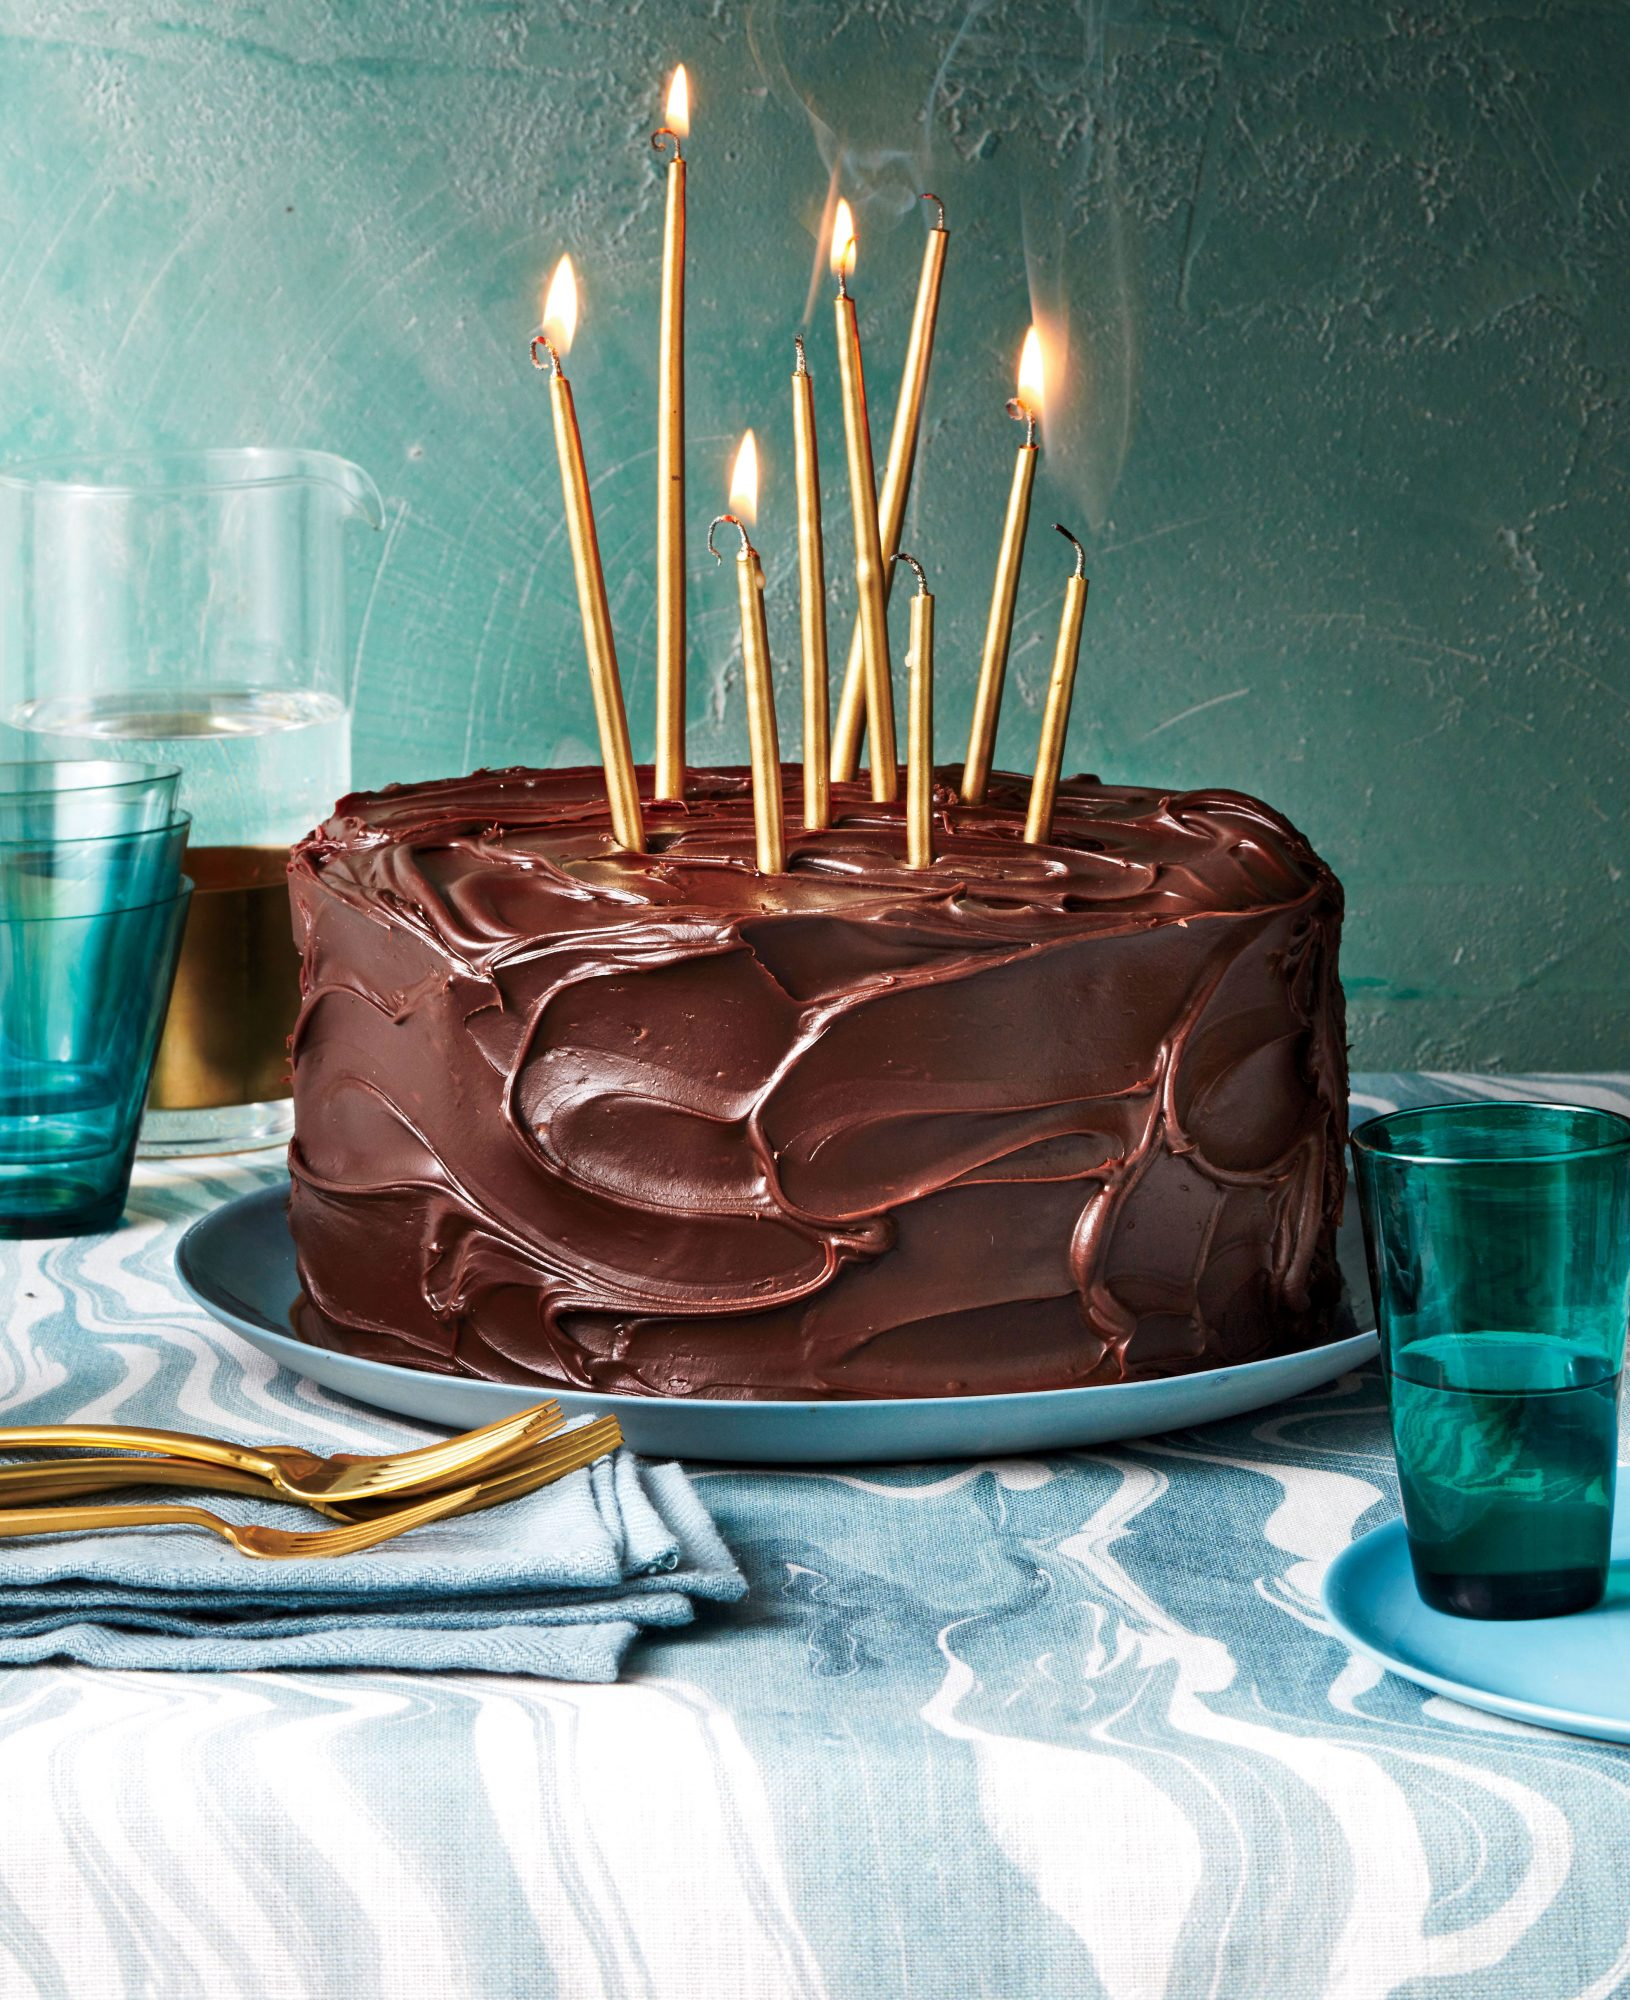 Bake These Layer Cakes to Celebrate Life's Small Victories